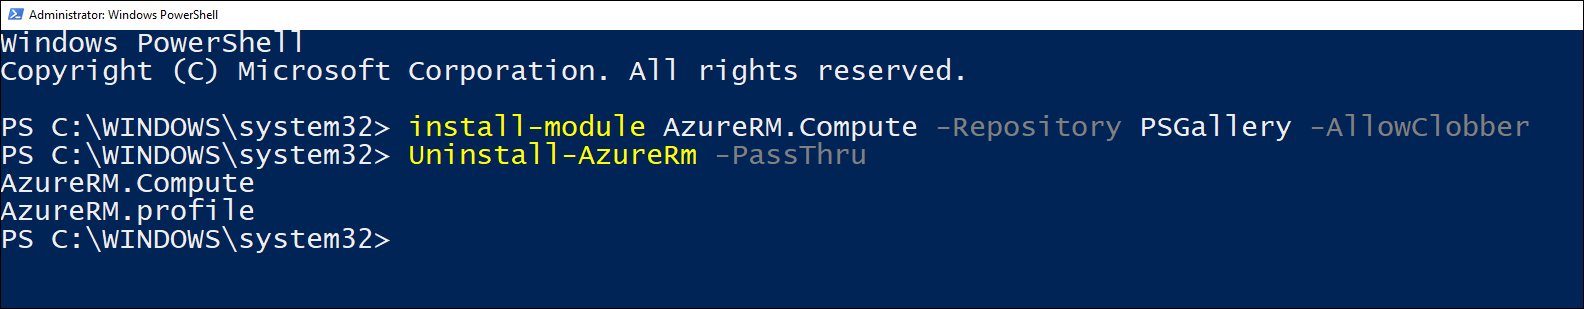 Screenshot of PowerShell session where Uninstall-AzureRm cmdlet was run.